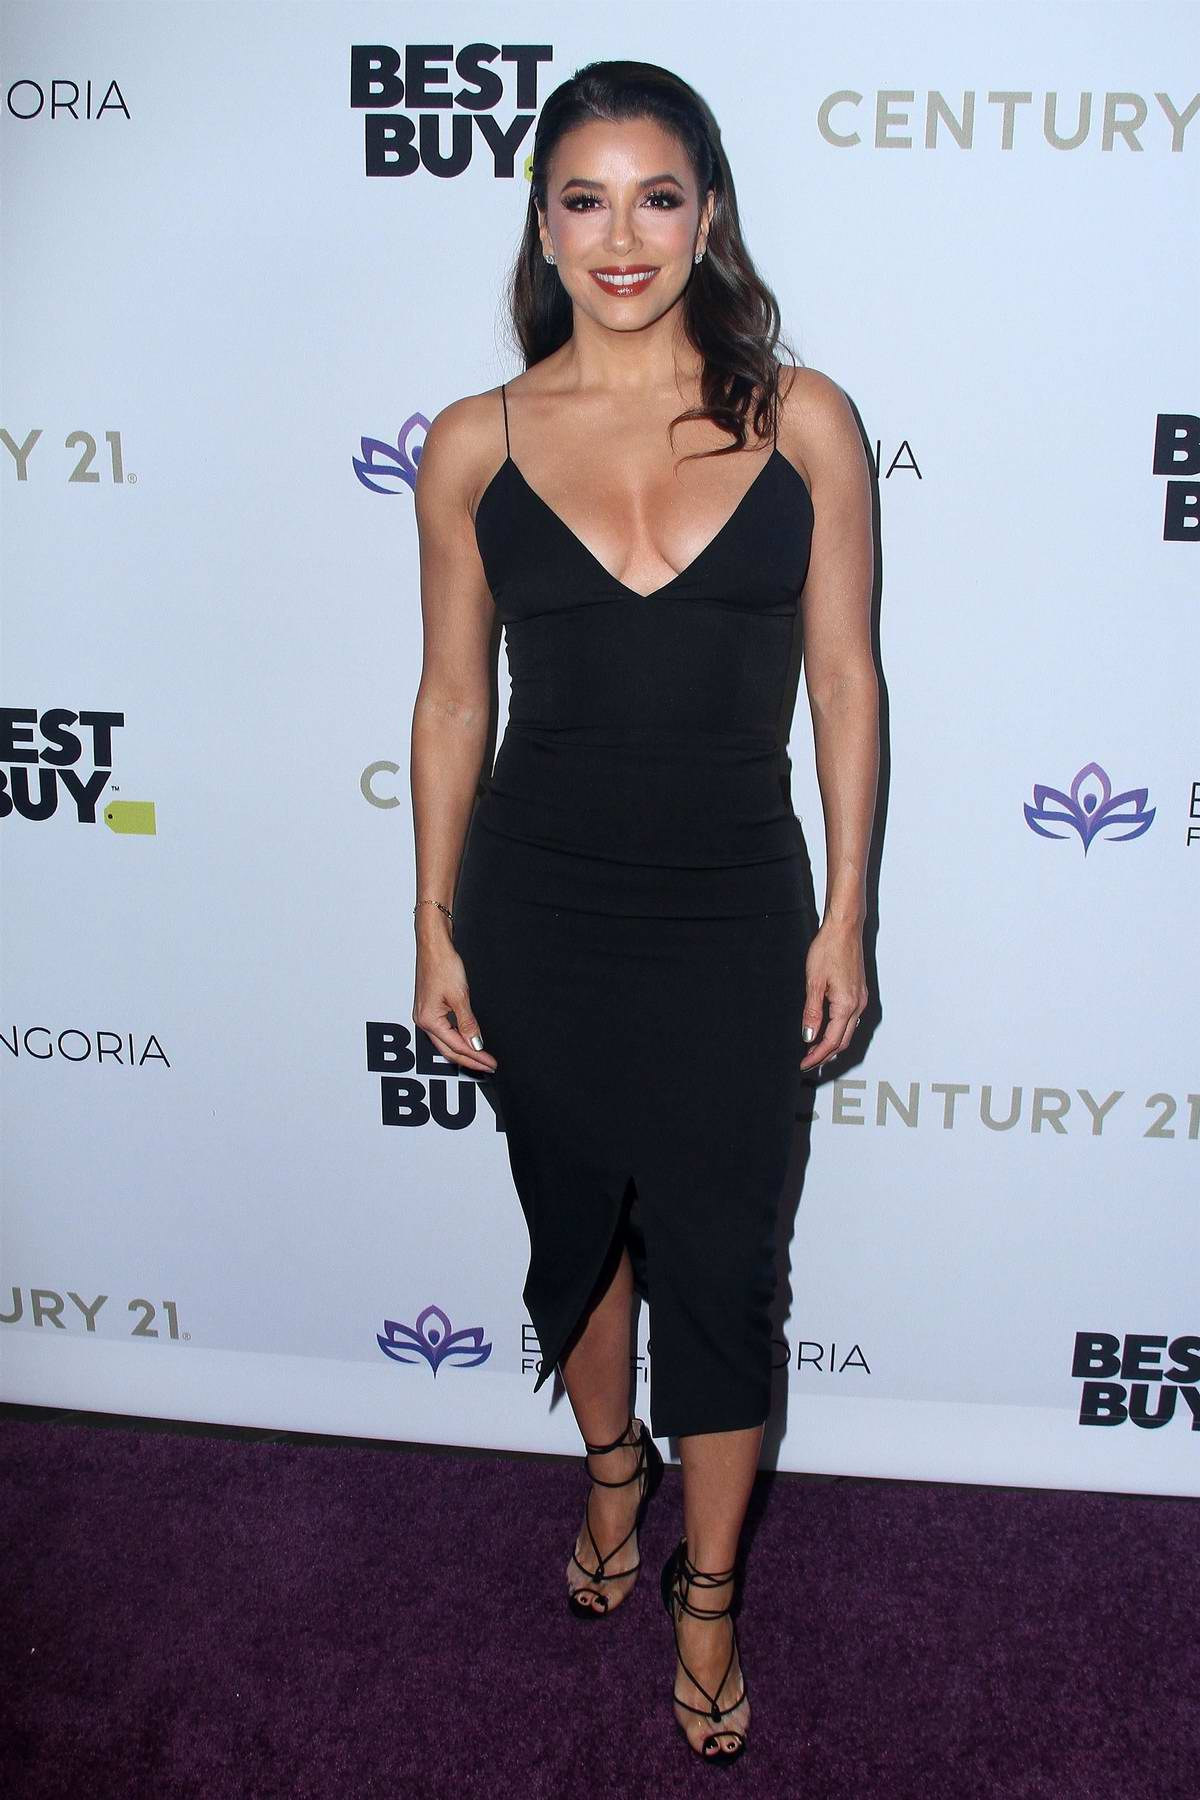 Eva Longoria attends The Eva Longoria Foundation Gala at the Four Seasons Los Angeles in Beverly Hills, California